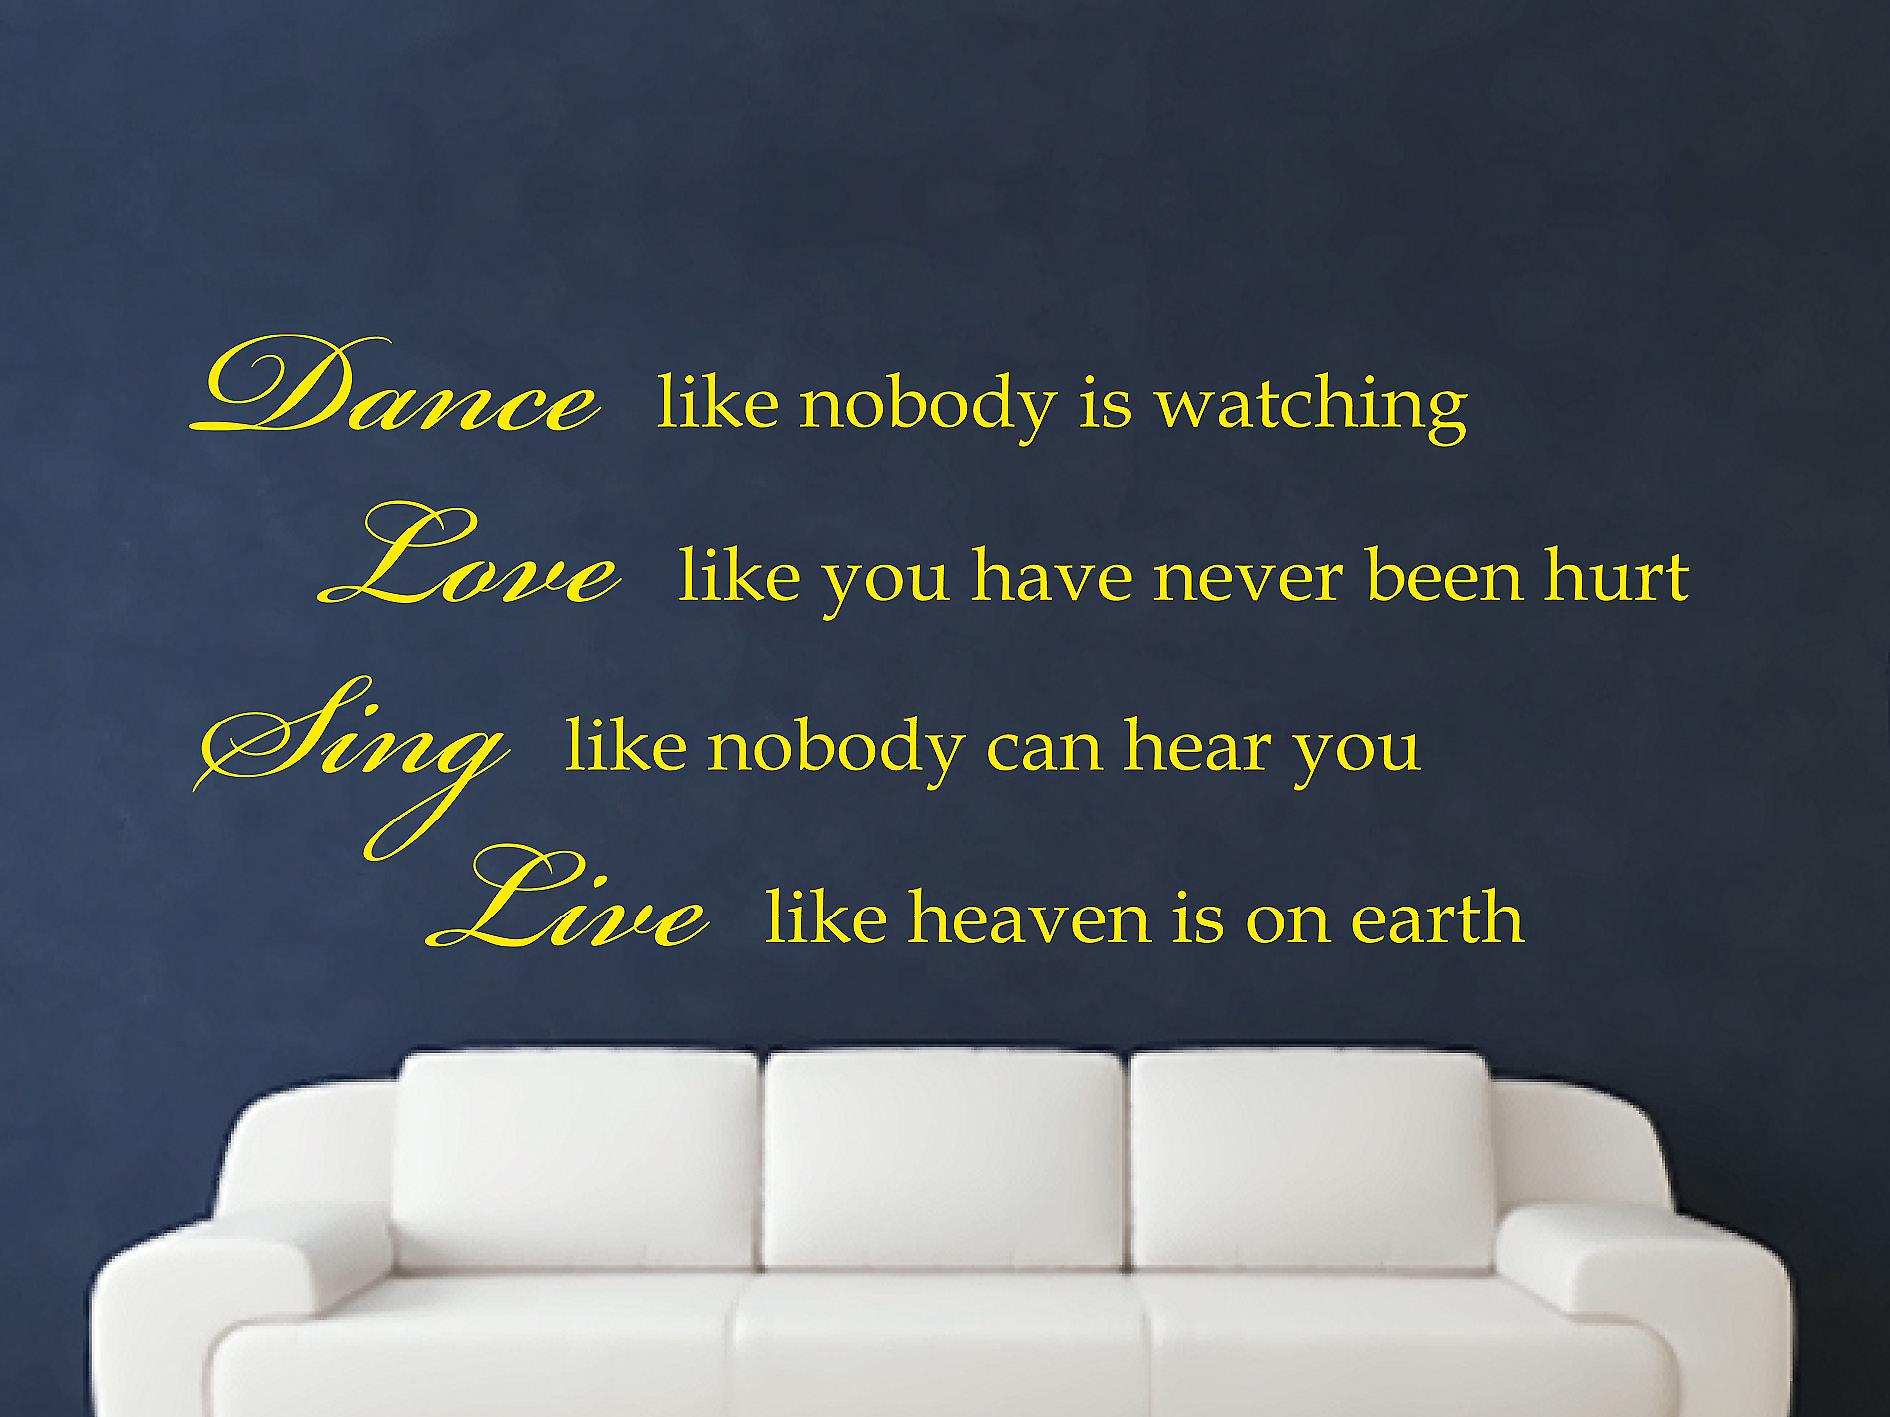 Dance Like Nobody Is Watching Wall Art Sticker - Bright Yellow